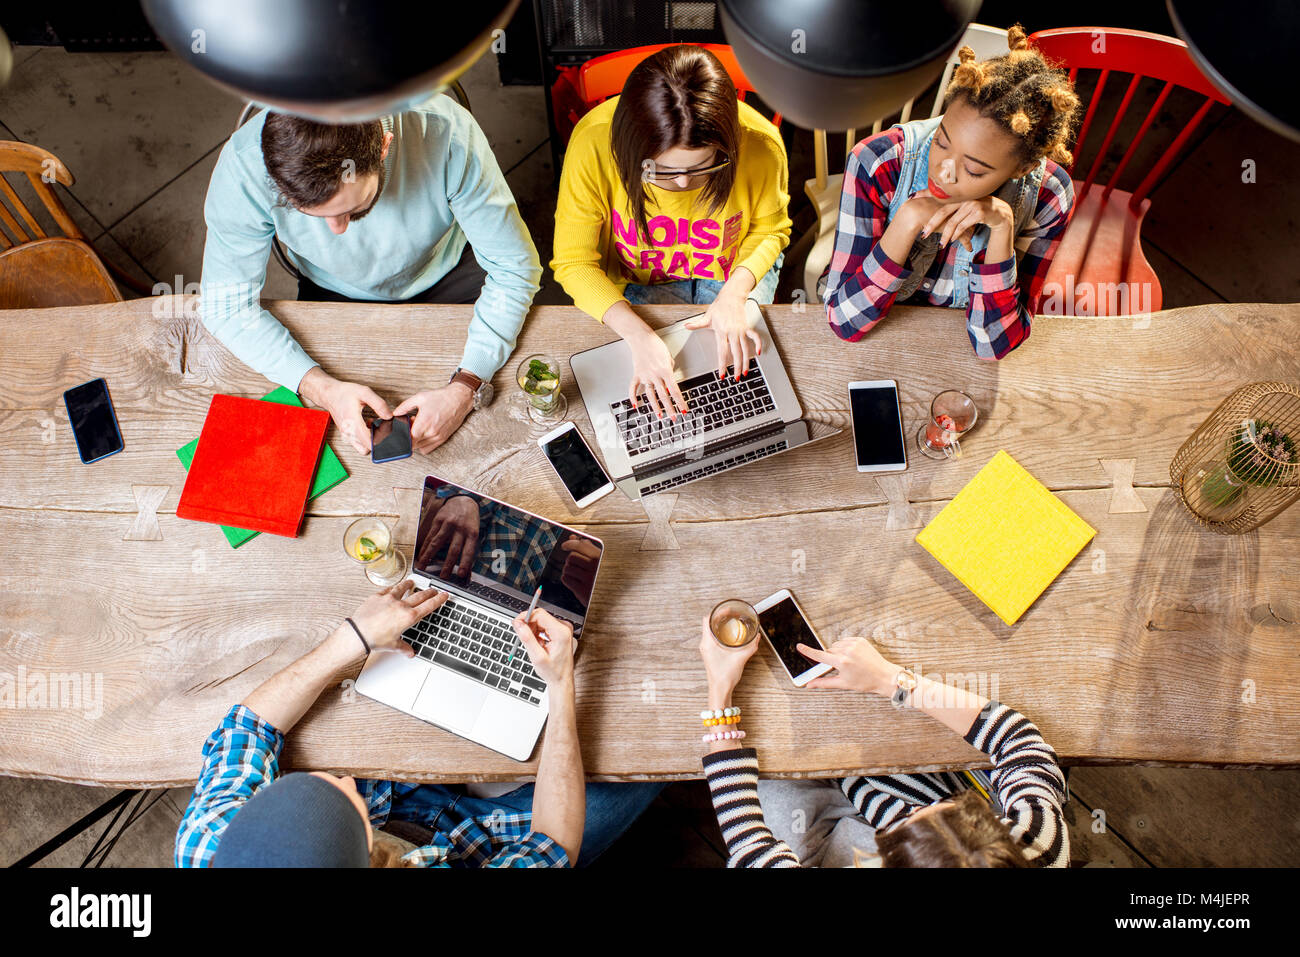 People working with laptops and phones - Stock Image